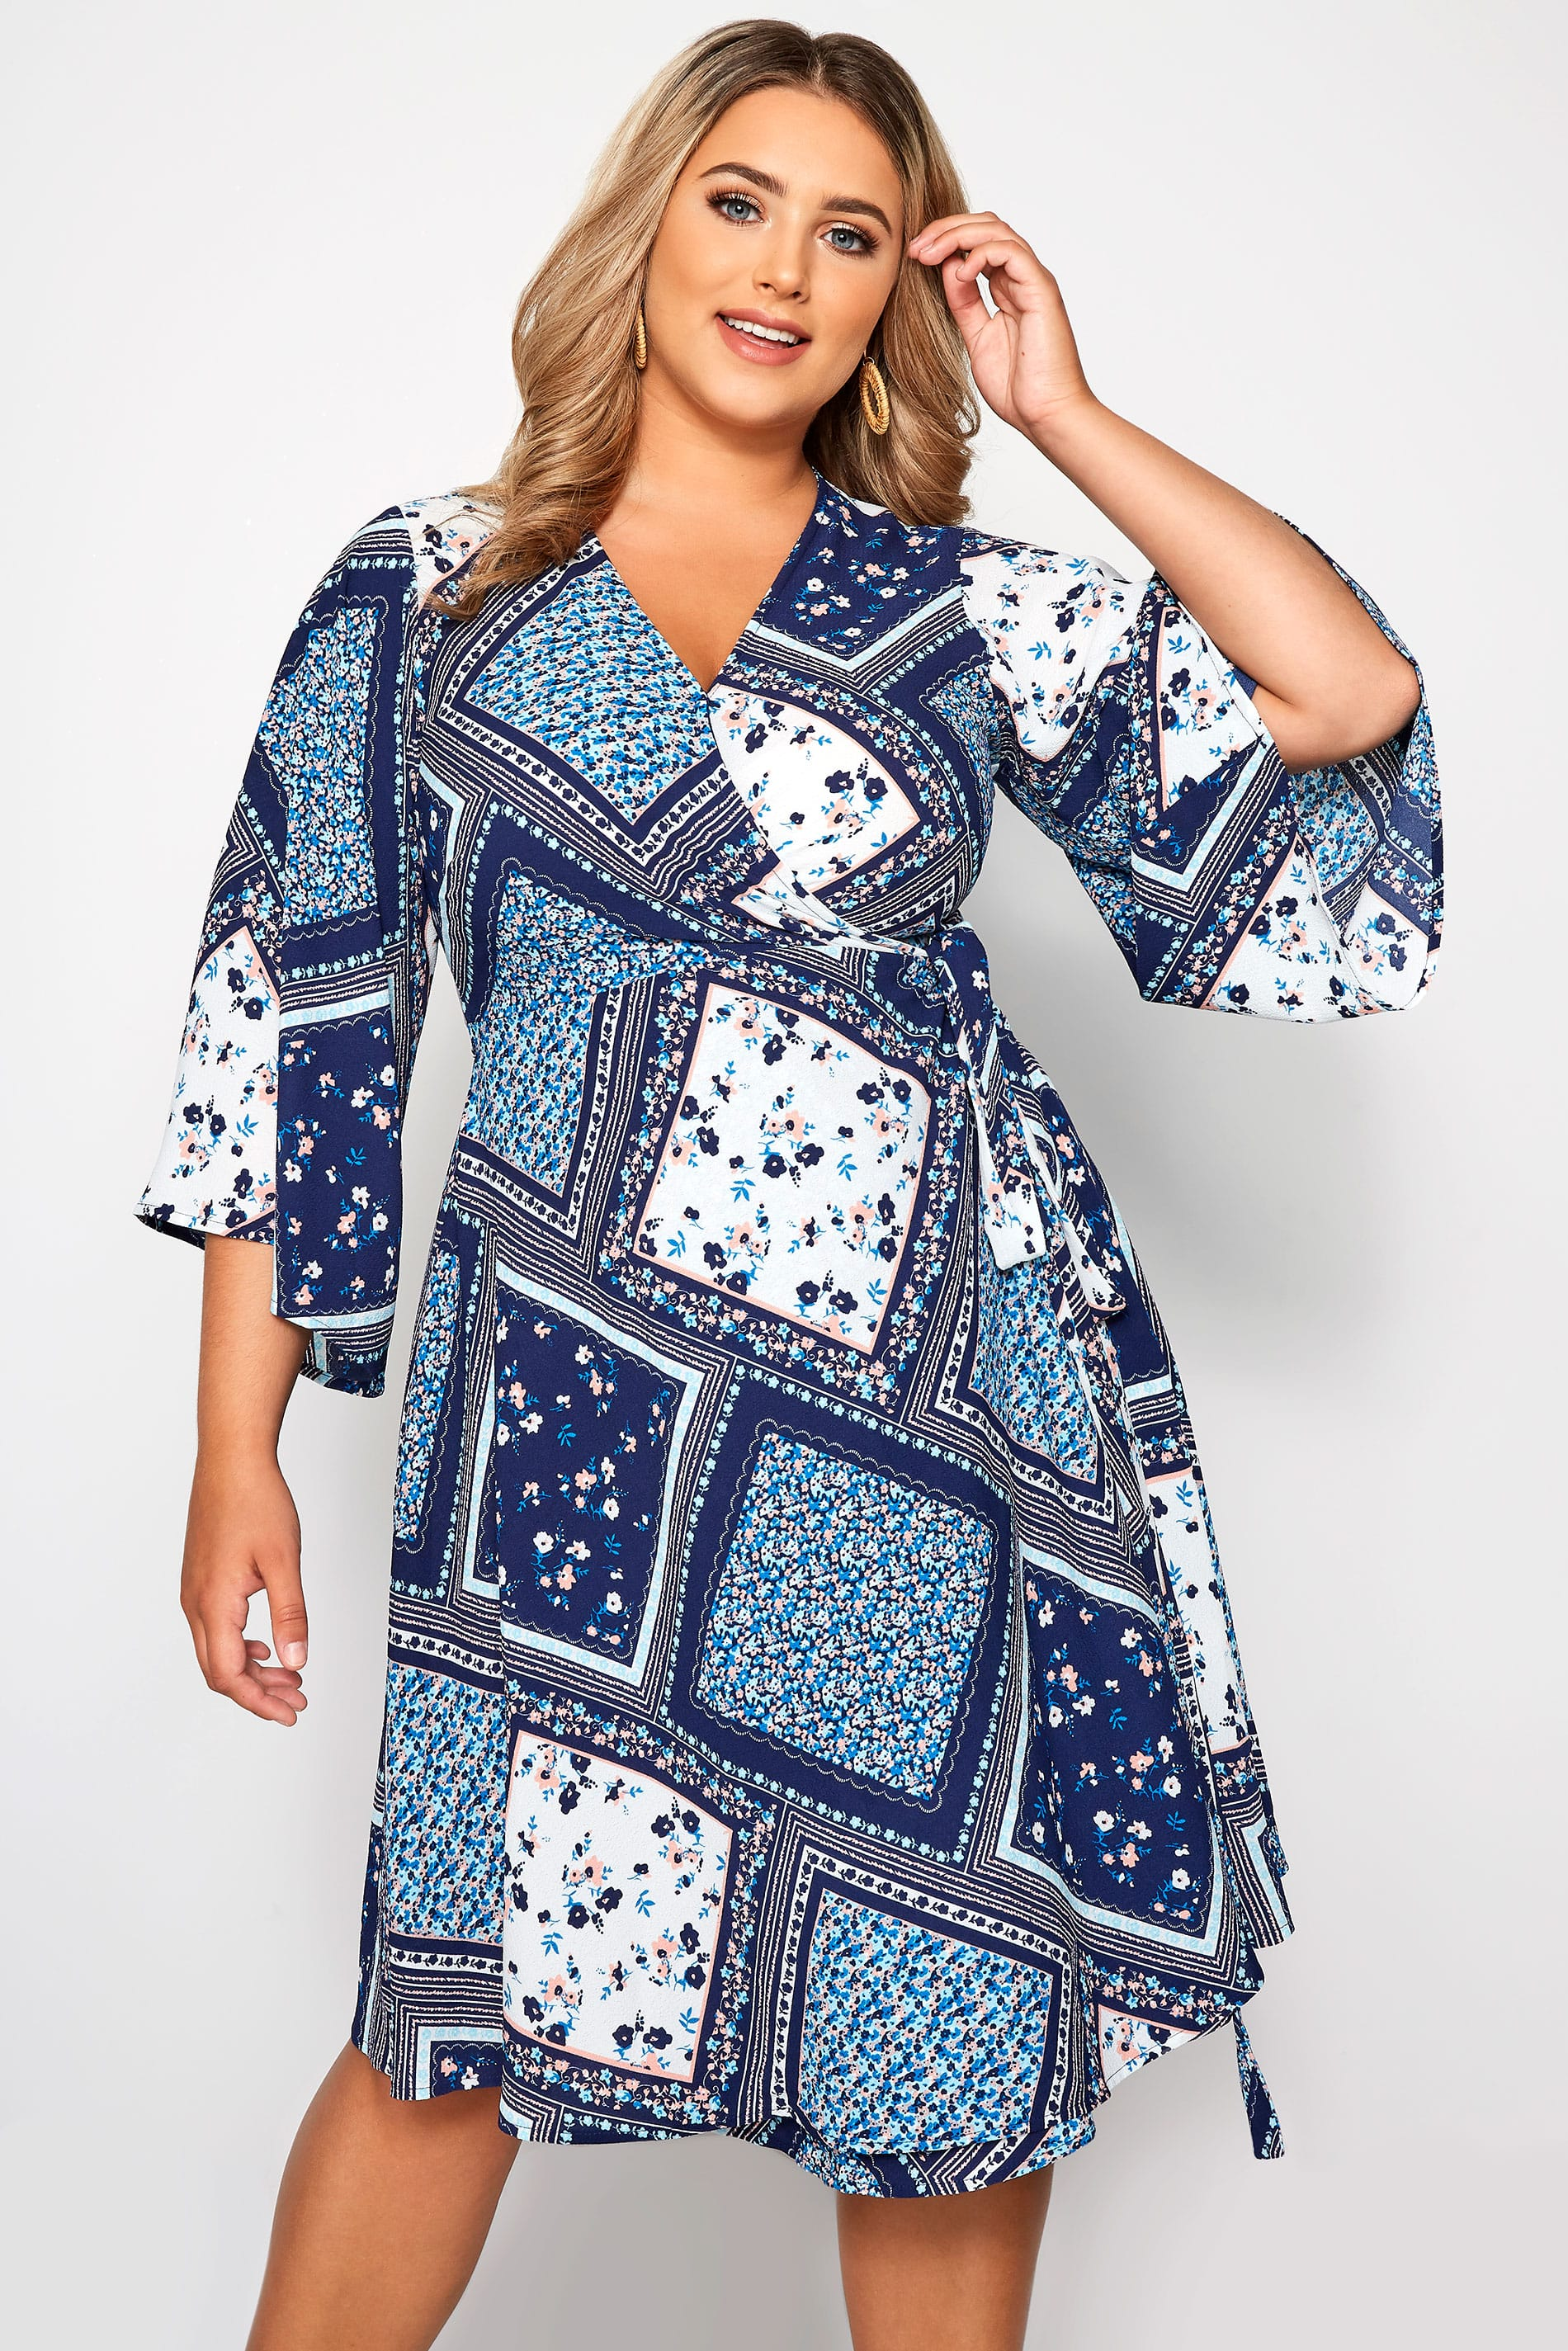 YOURS LONDON Kleid im Patchwork-Muster - Blau